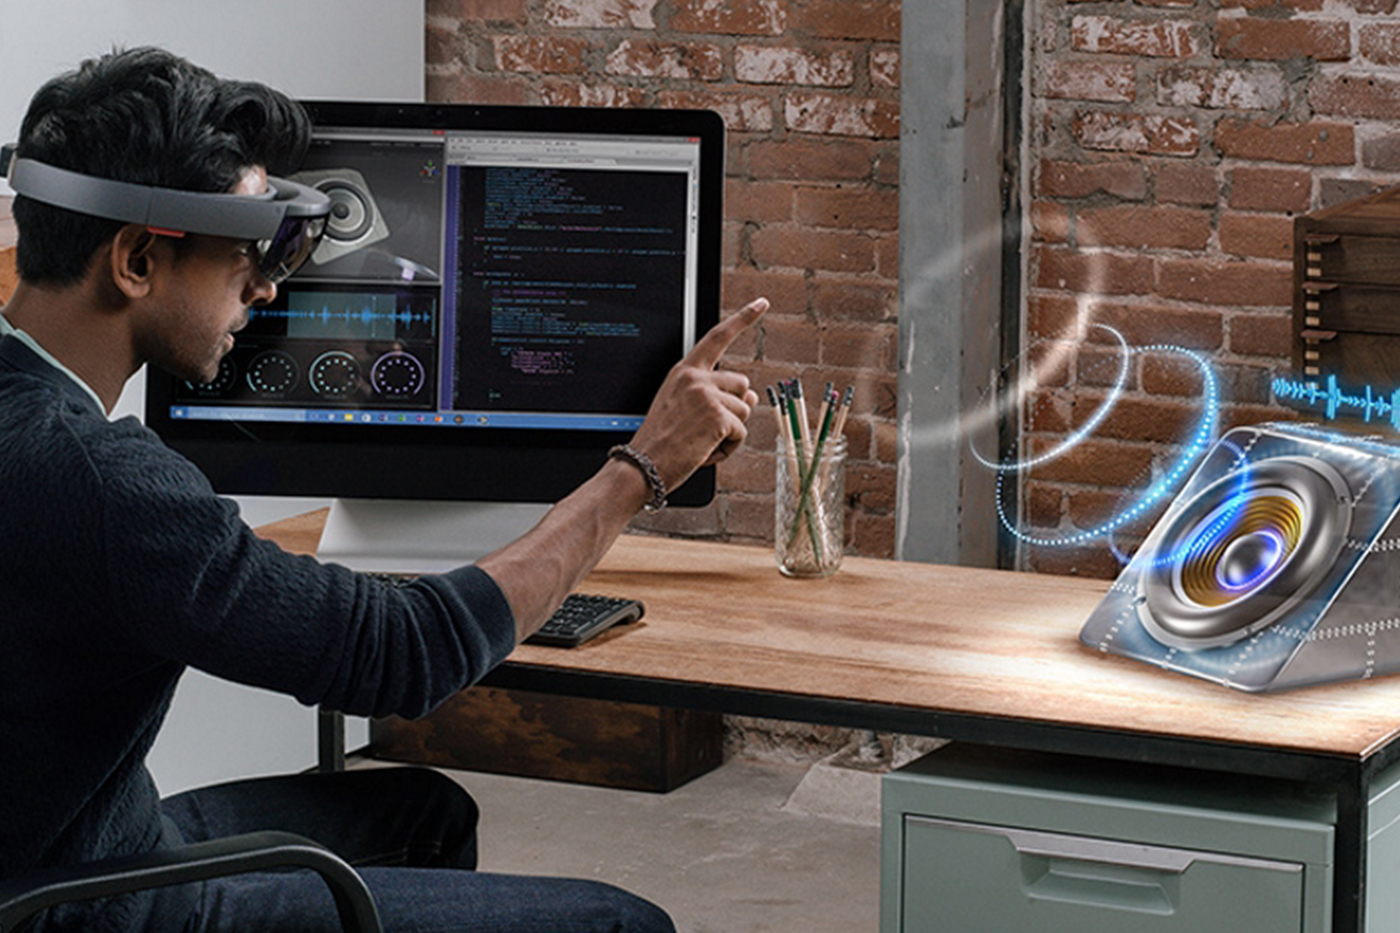 Microsoft 'MR' HoloLens - Man using headset at desk with speaker.